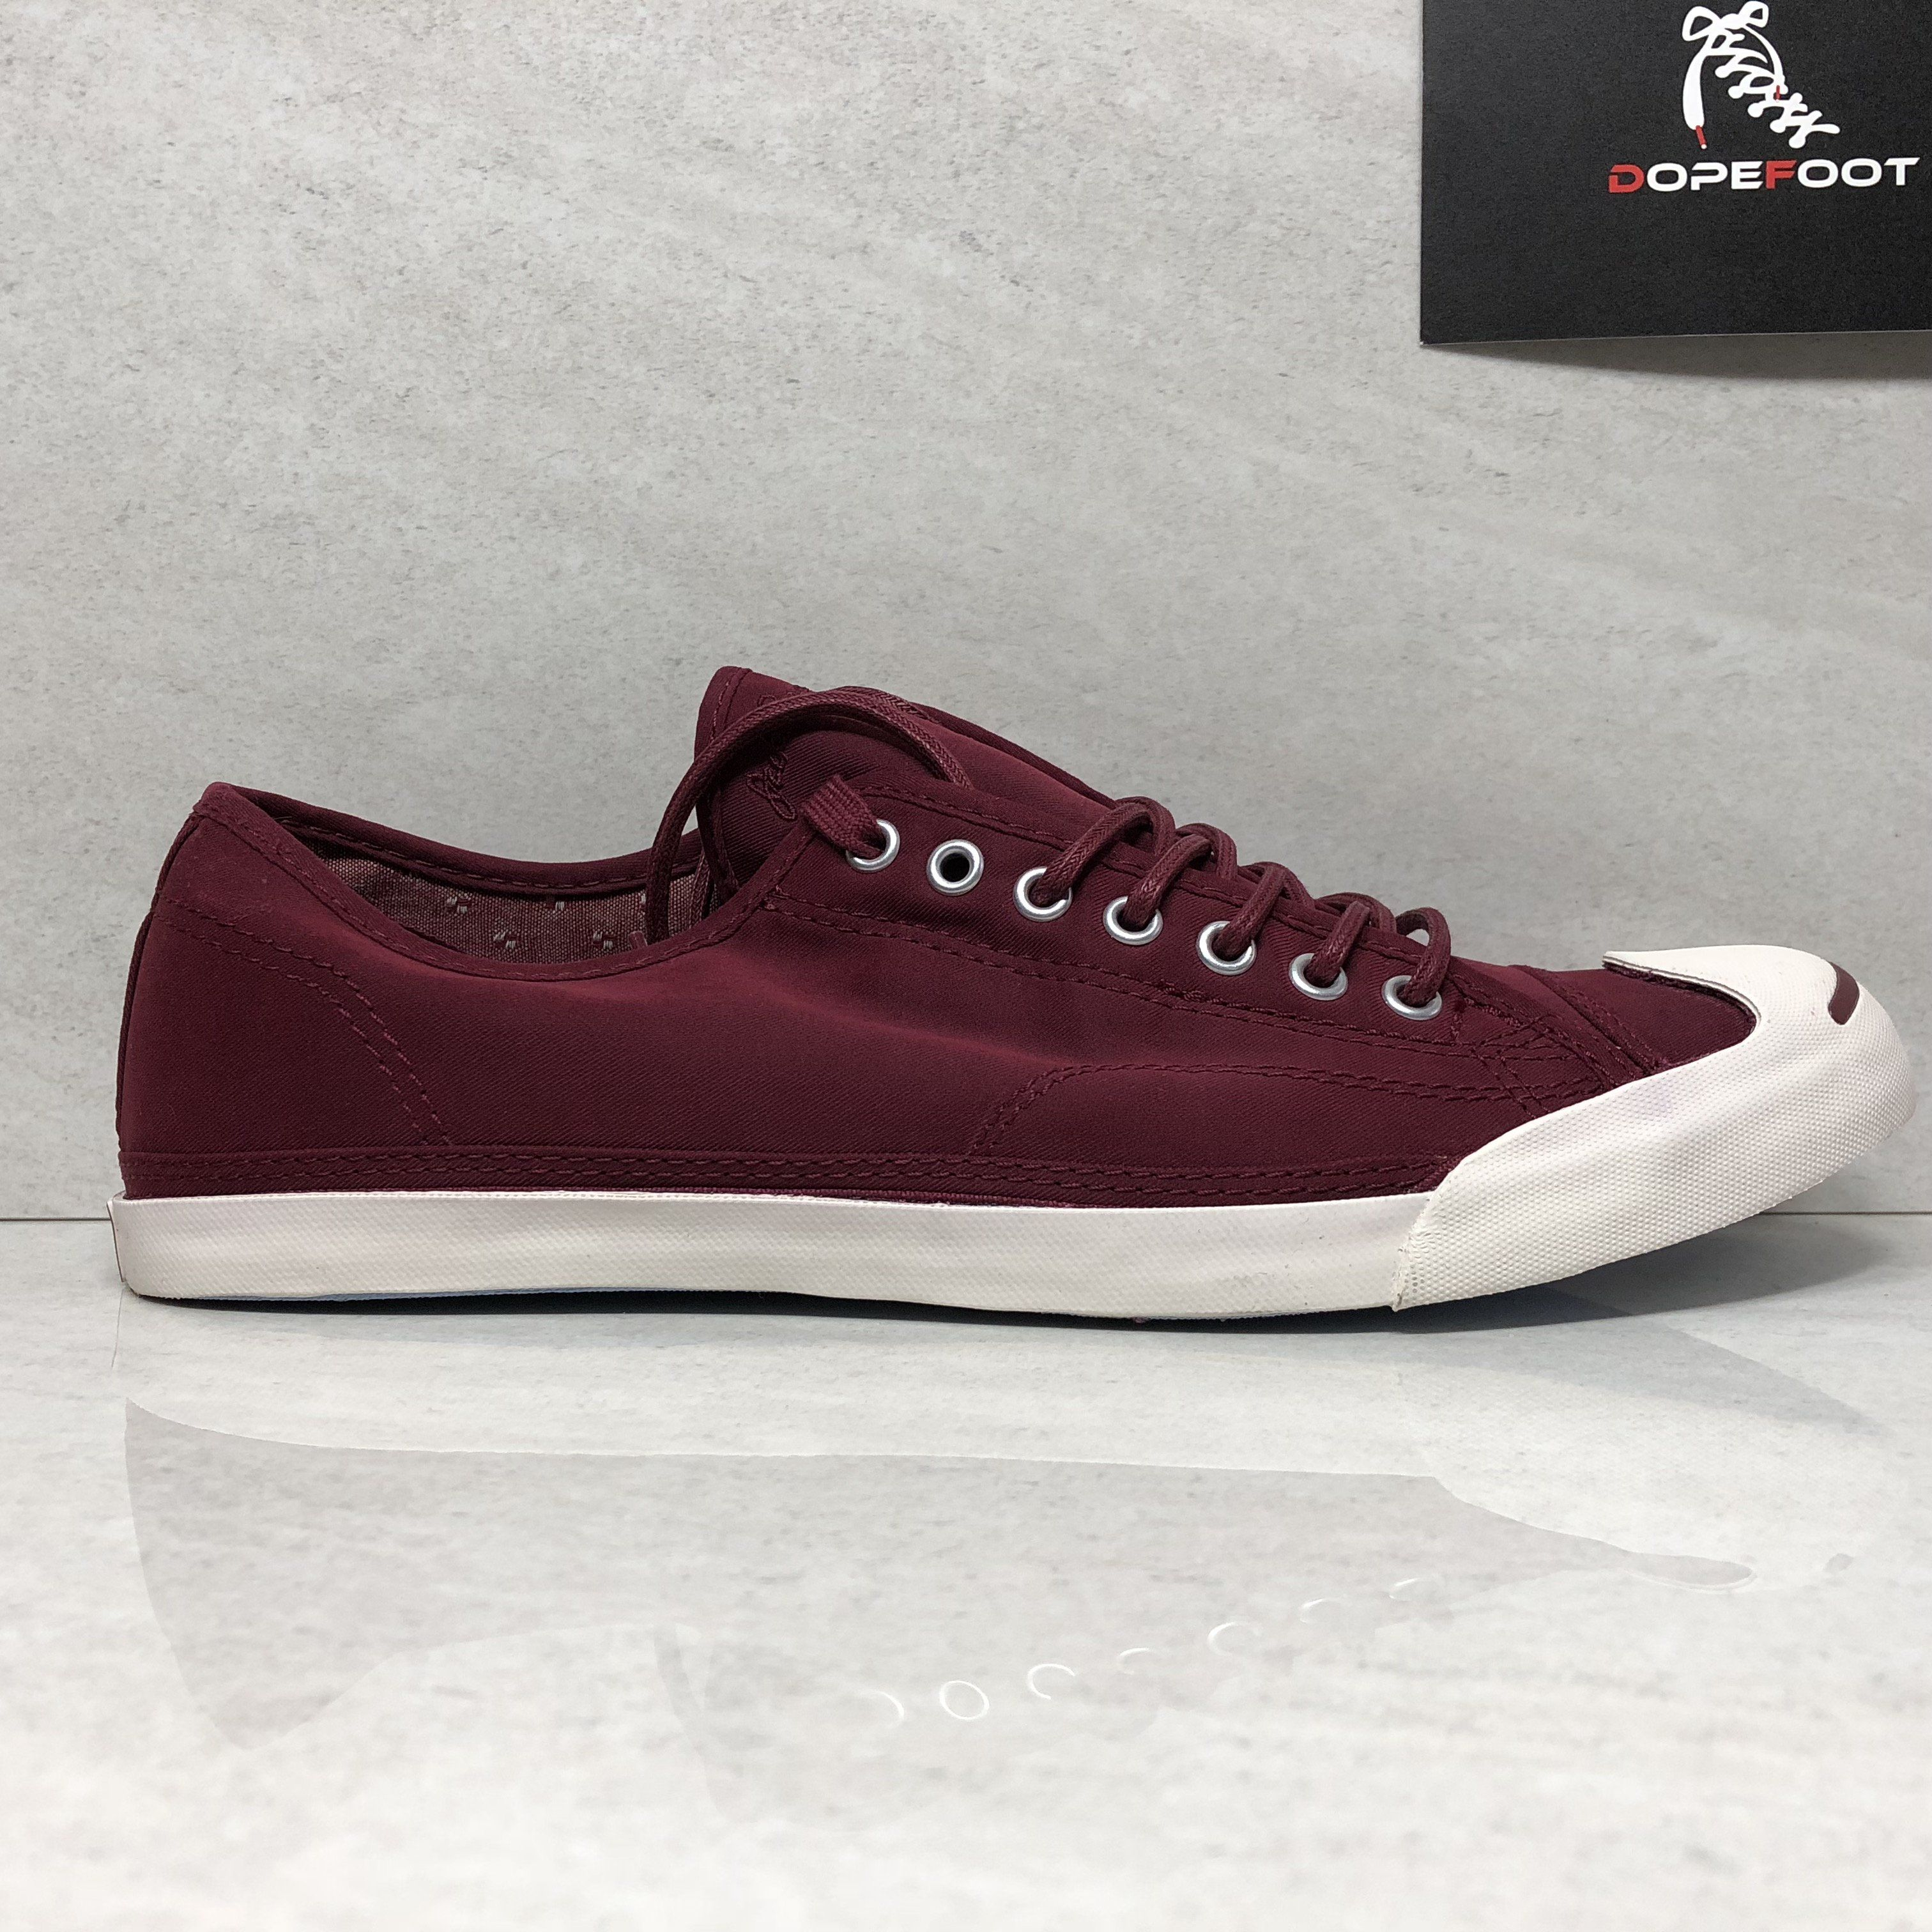 67472618d5ac7a DS Converse Jack Purcell Size 11 JP LS Low Profile Slip-On Ox Burgundy  148359C